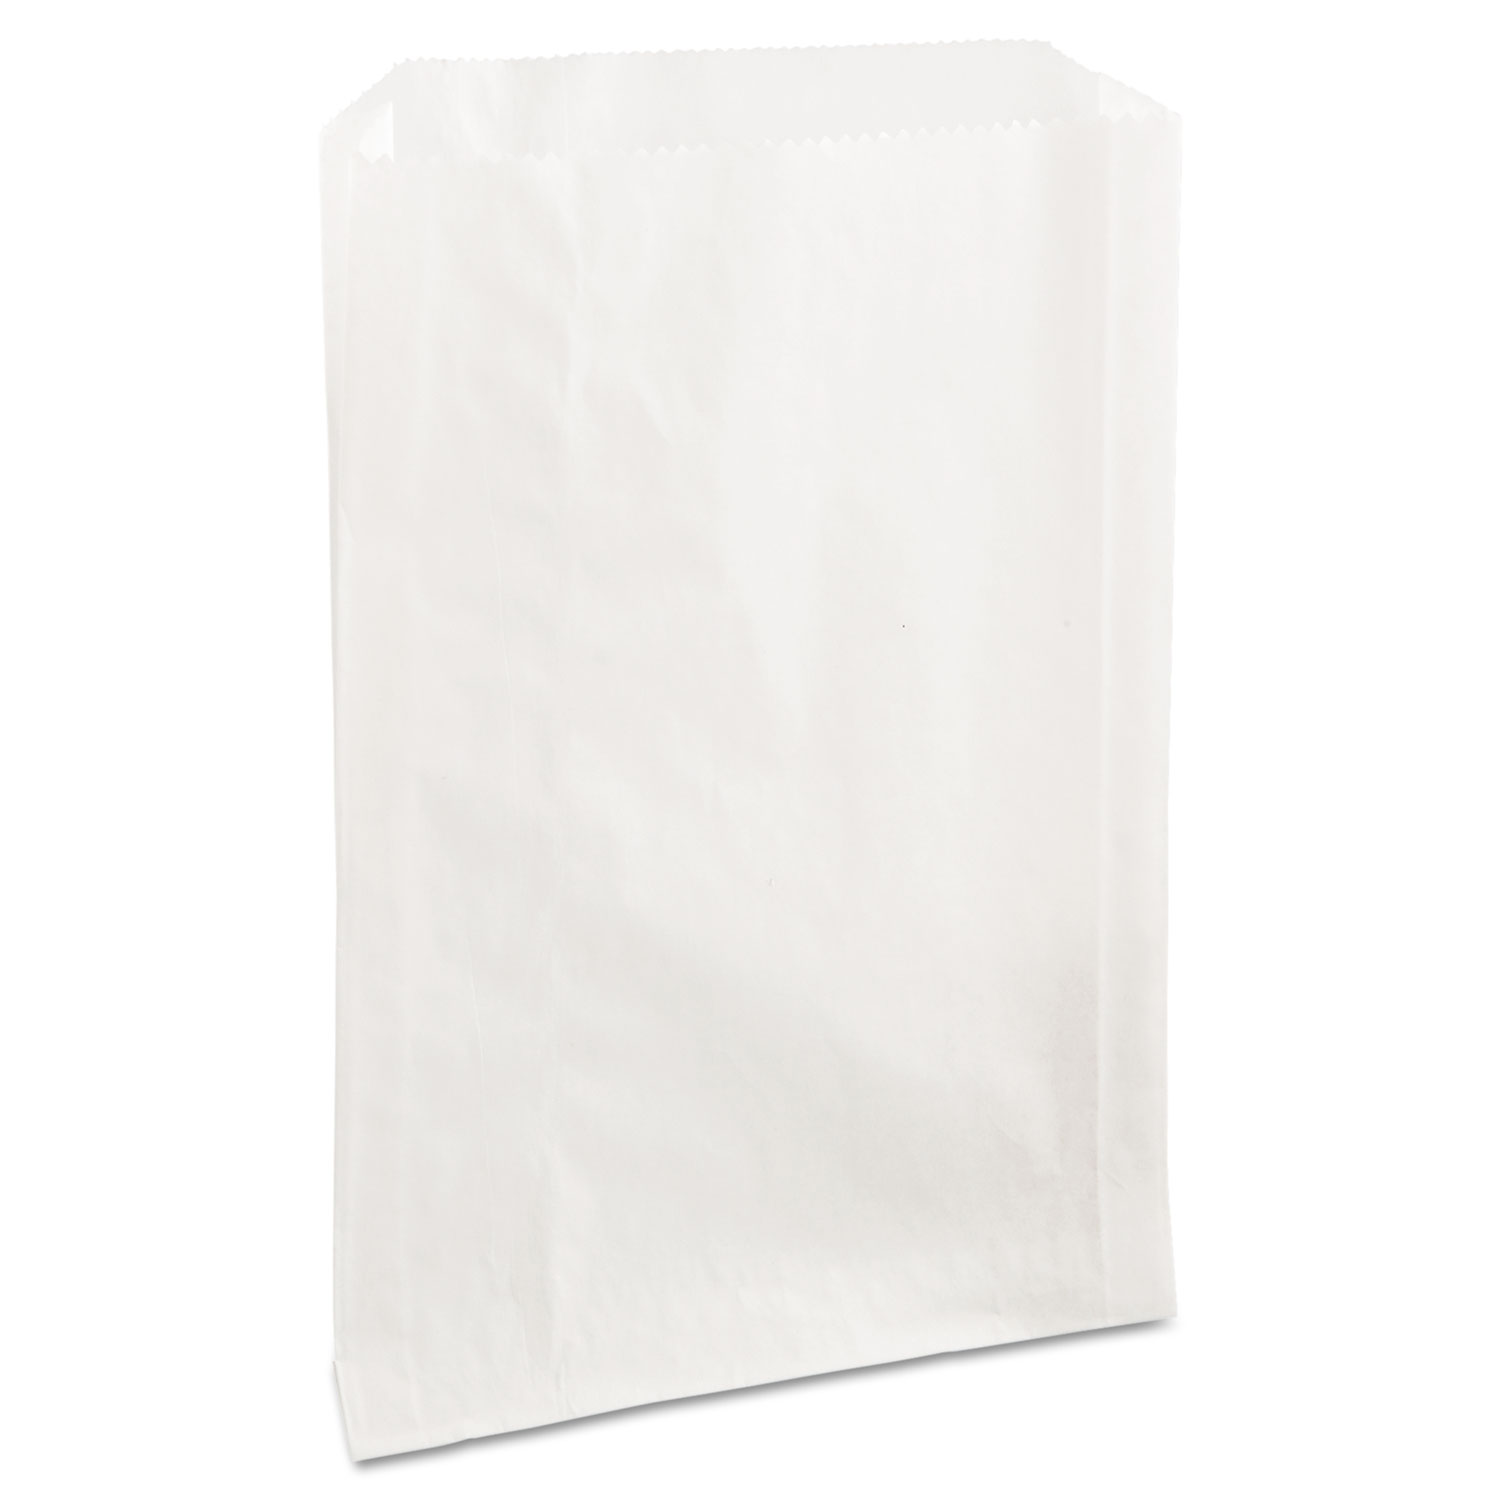 "Grease-Resistant Single-Serve Bags, 6.5"" x 8"", White, 2,000/Carton"